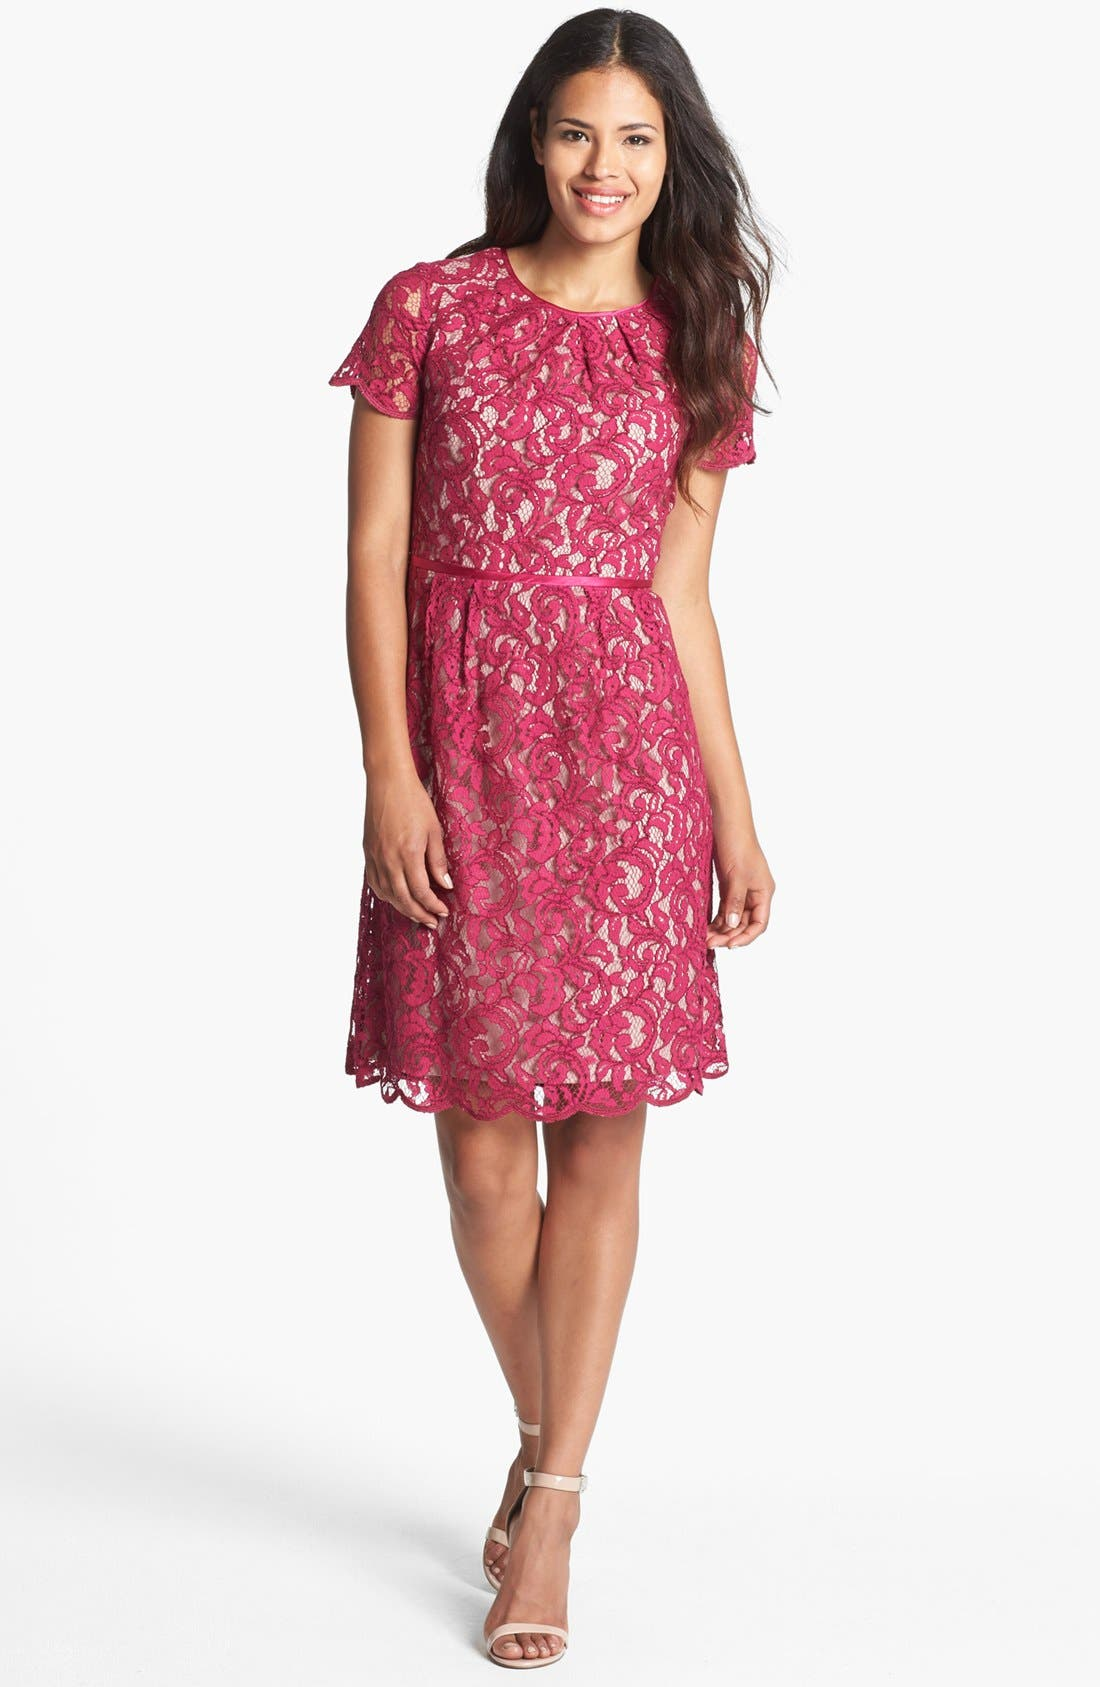 Alternate Image 1 Selected - Adrianna Papell Scalloped Lace Dress (Regular & Petite)